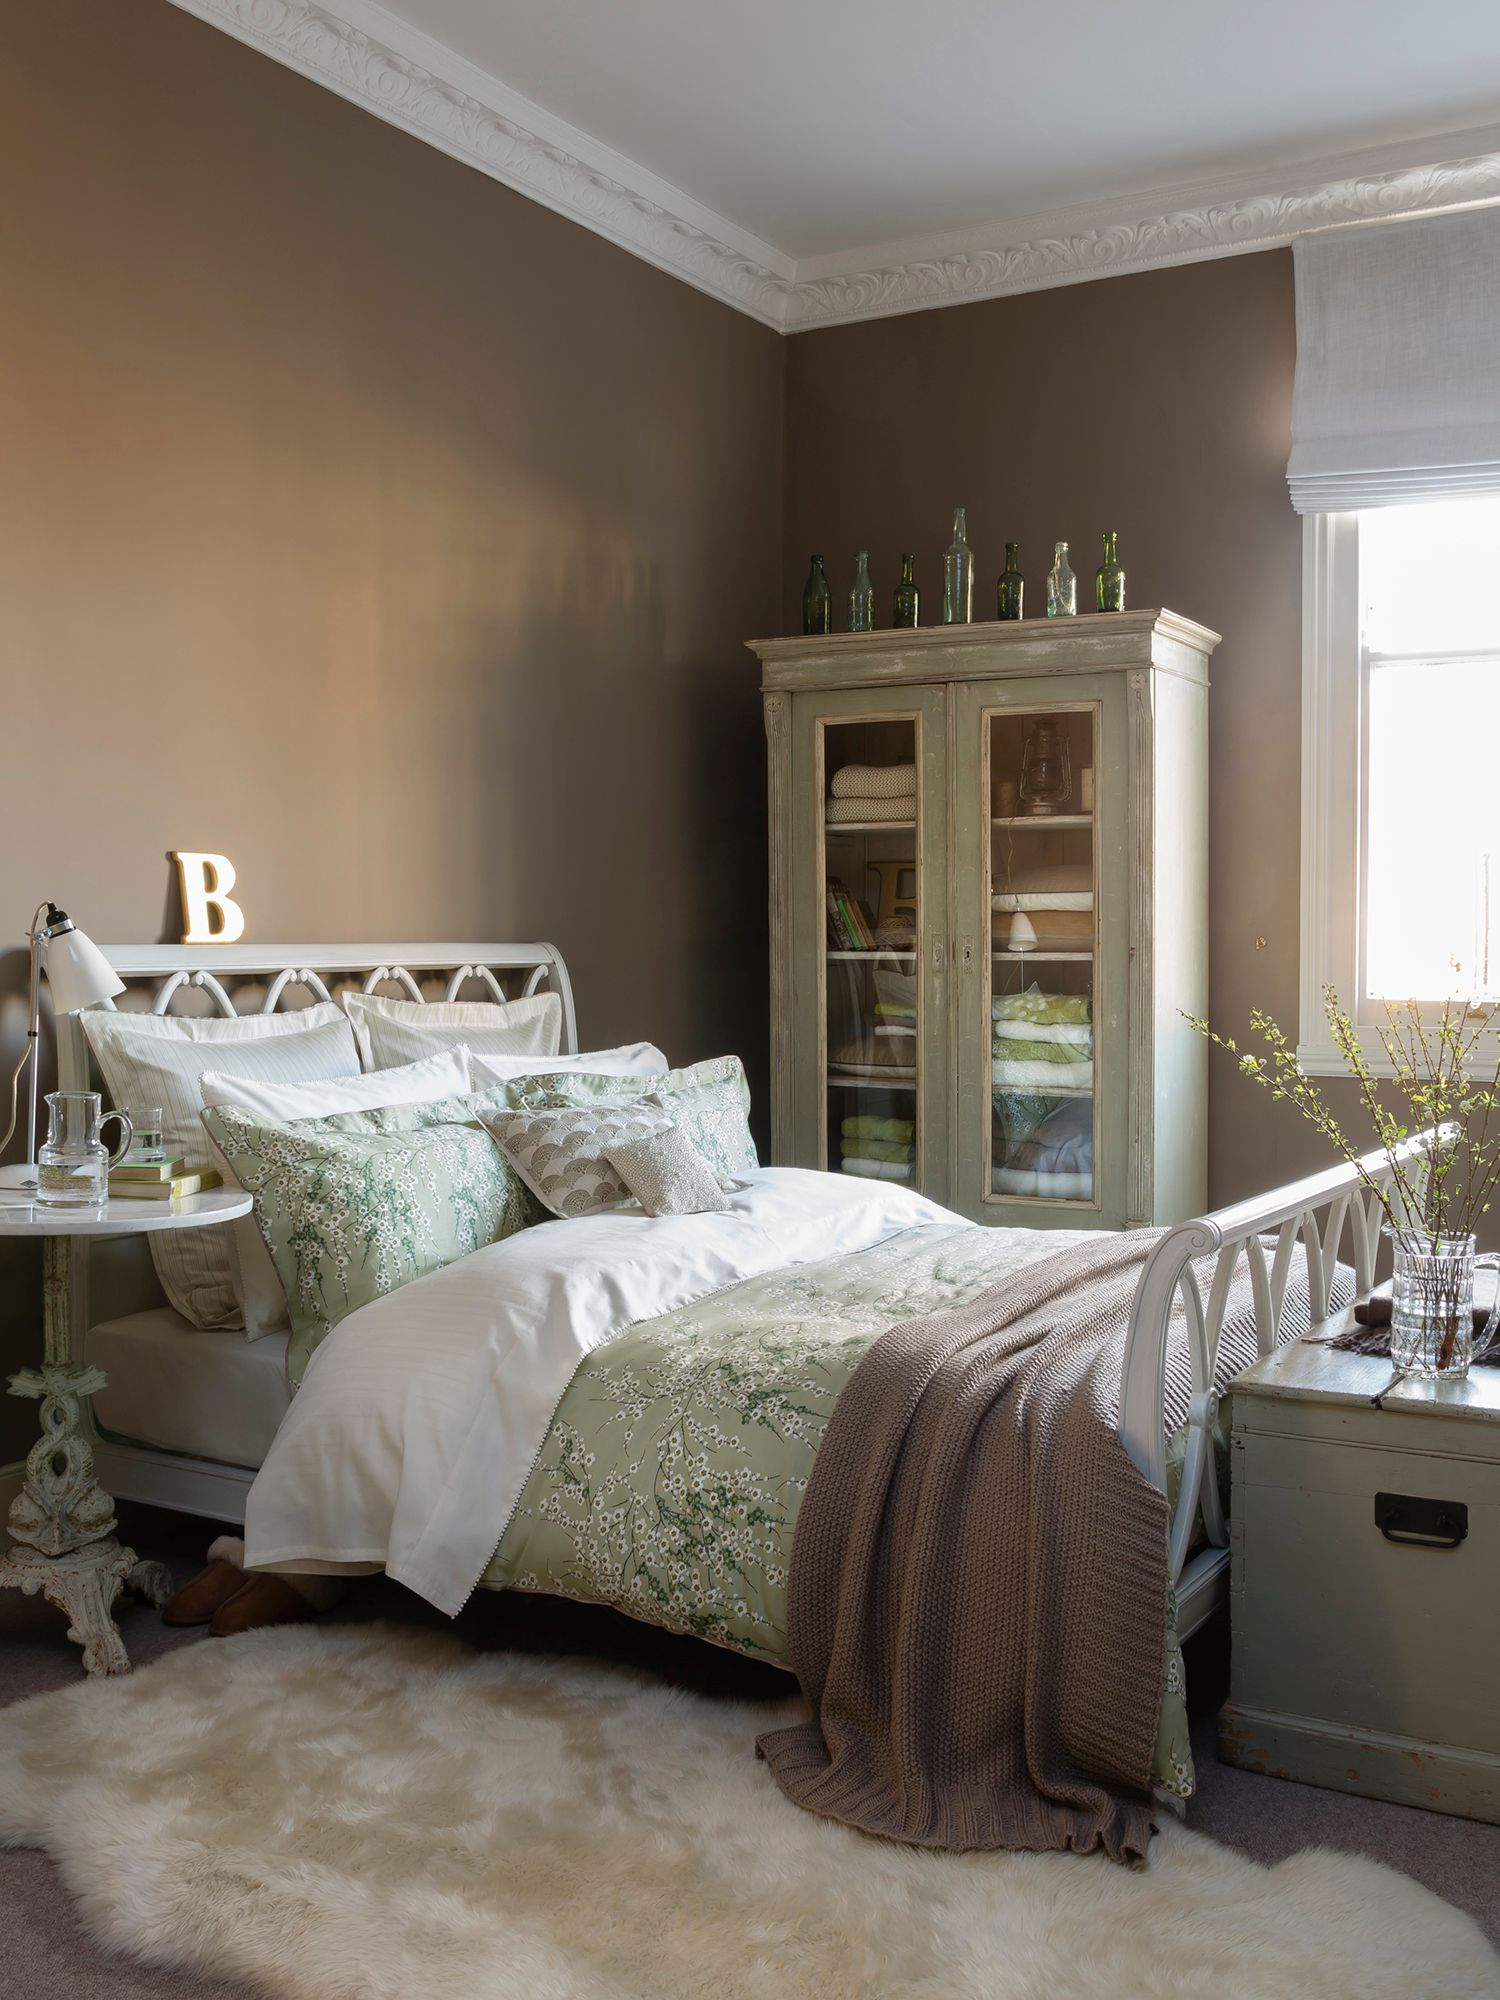 Lime blossom single duvet sage green